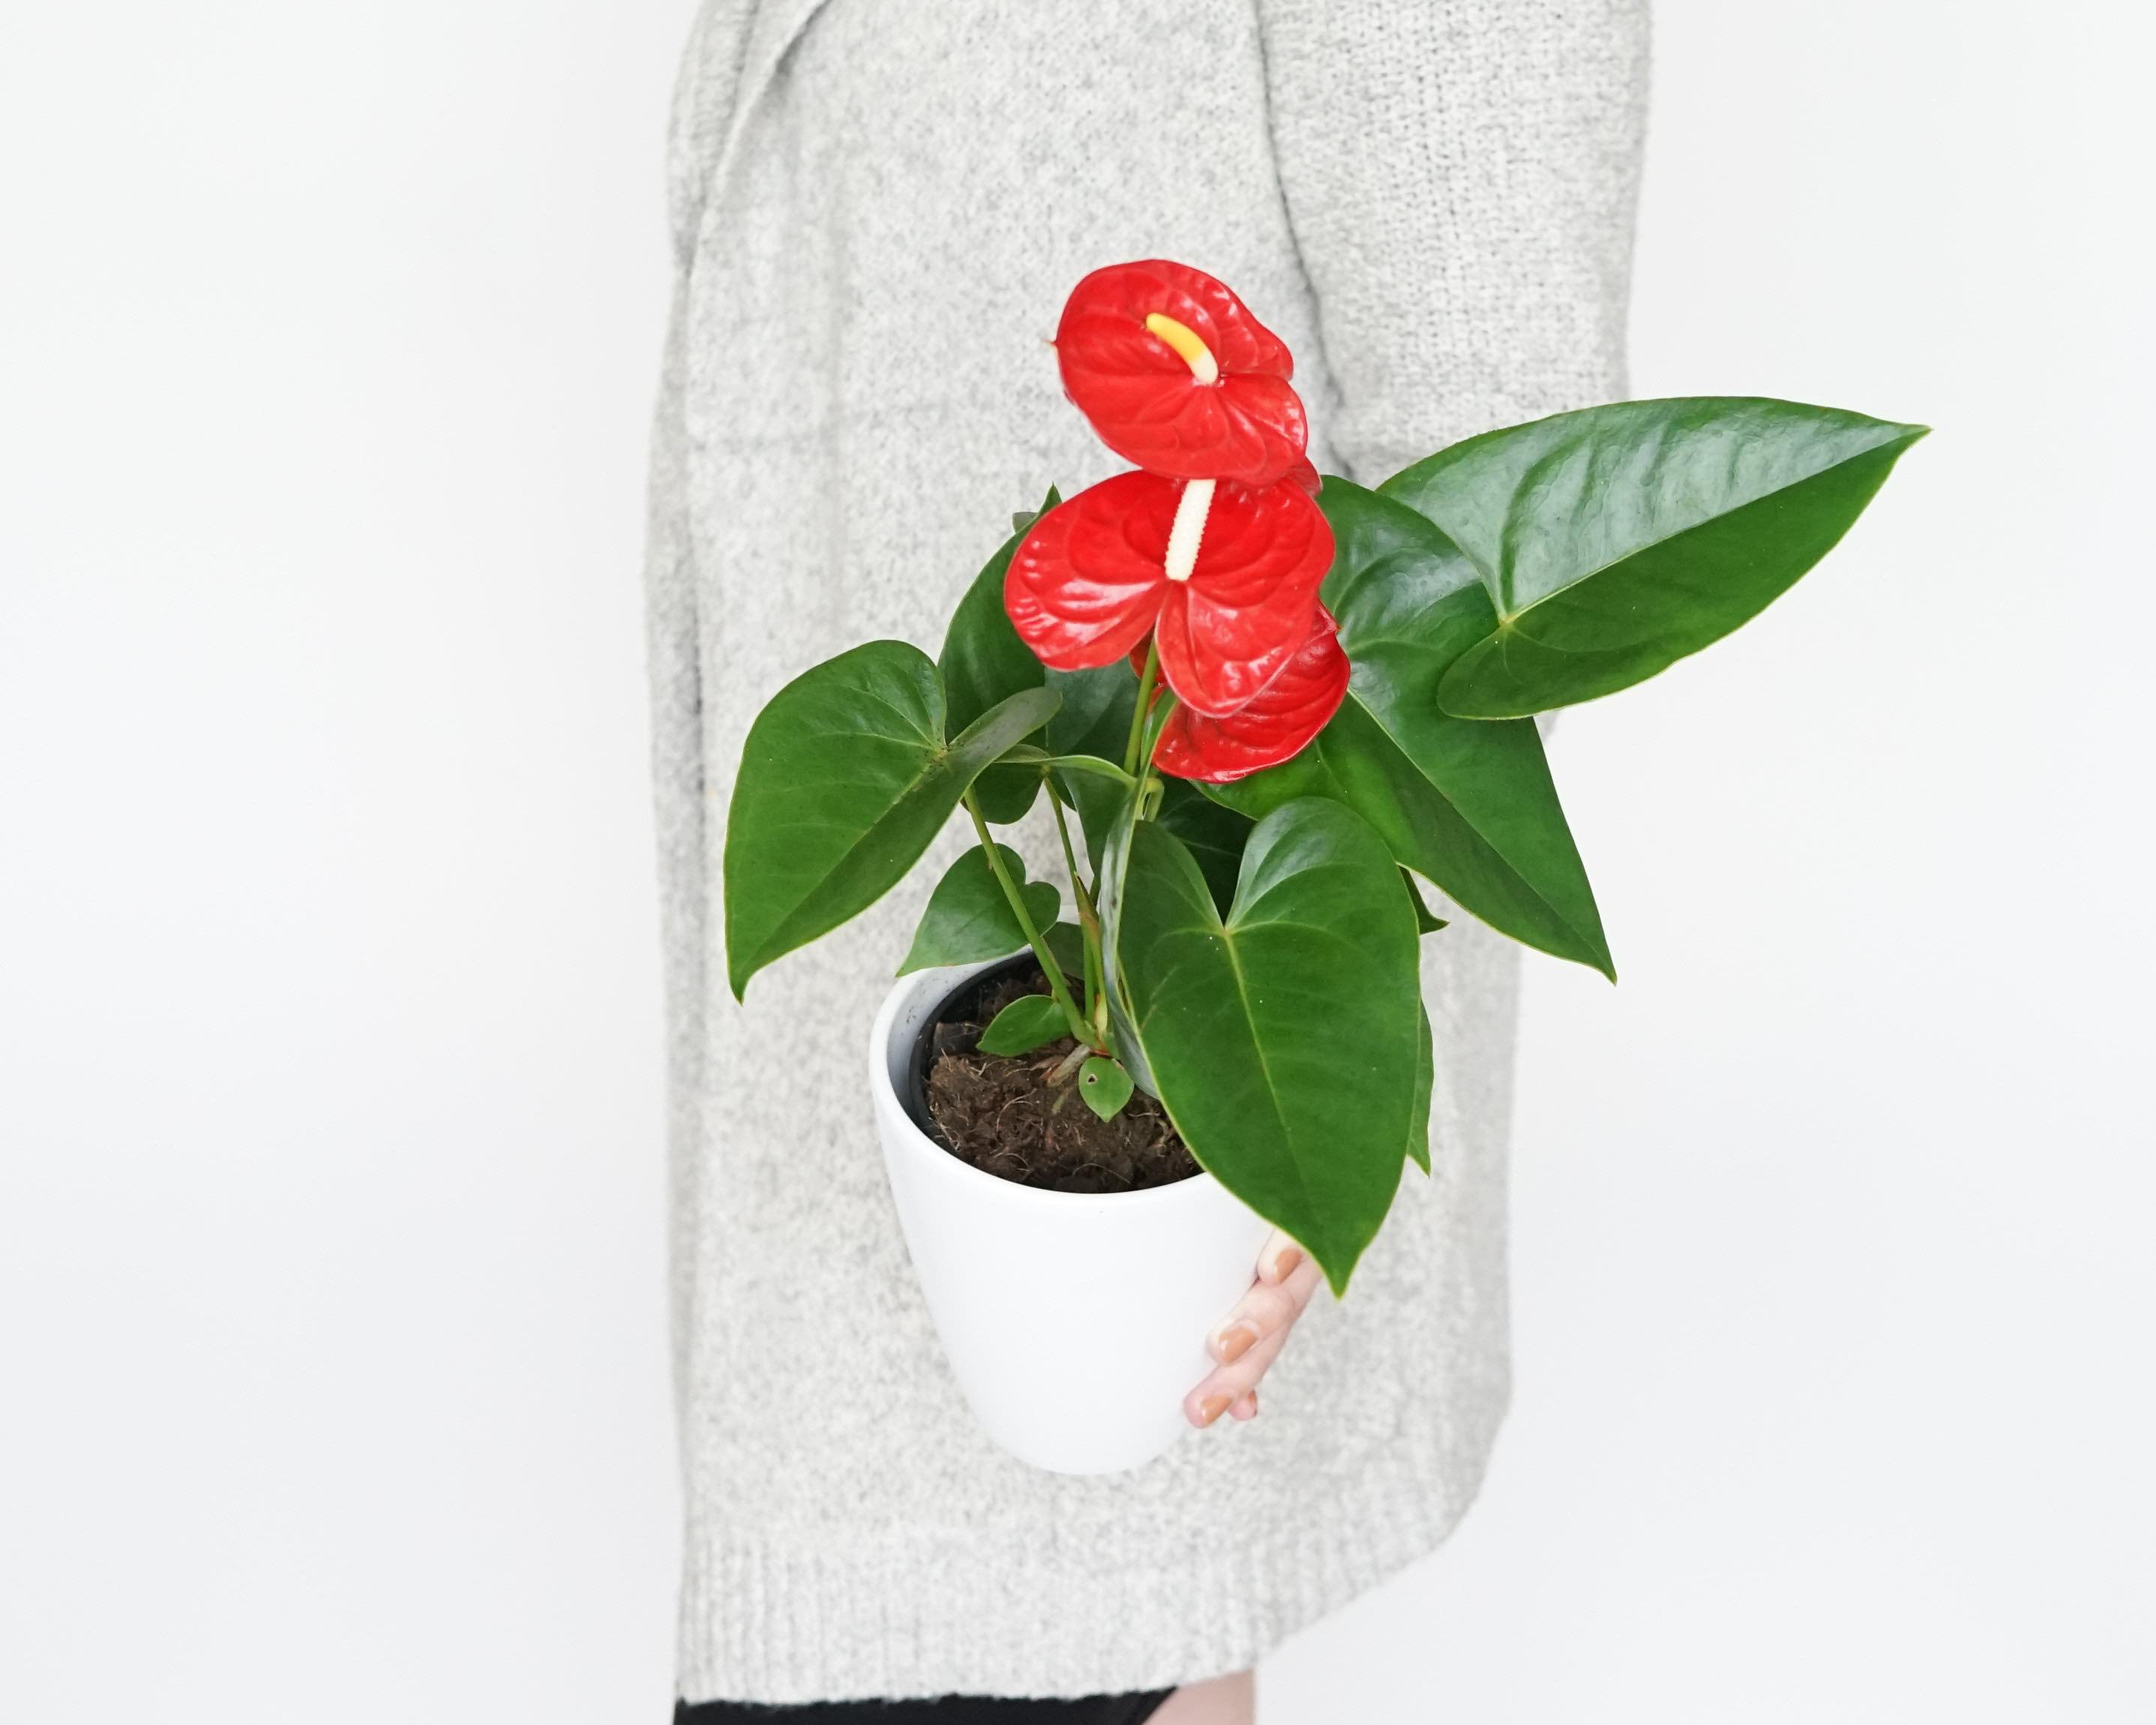 Plants as Valentine's Day Gifts